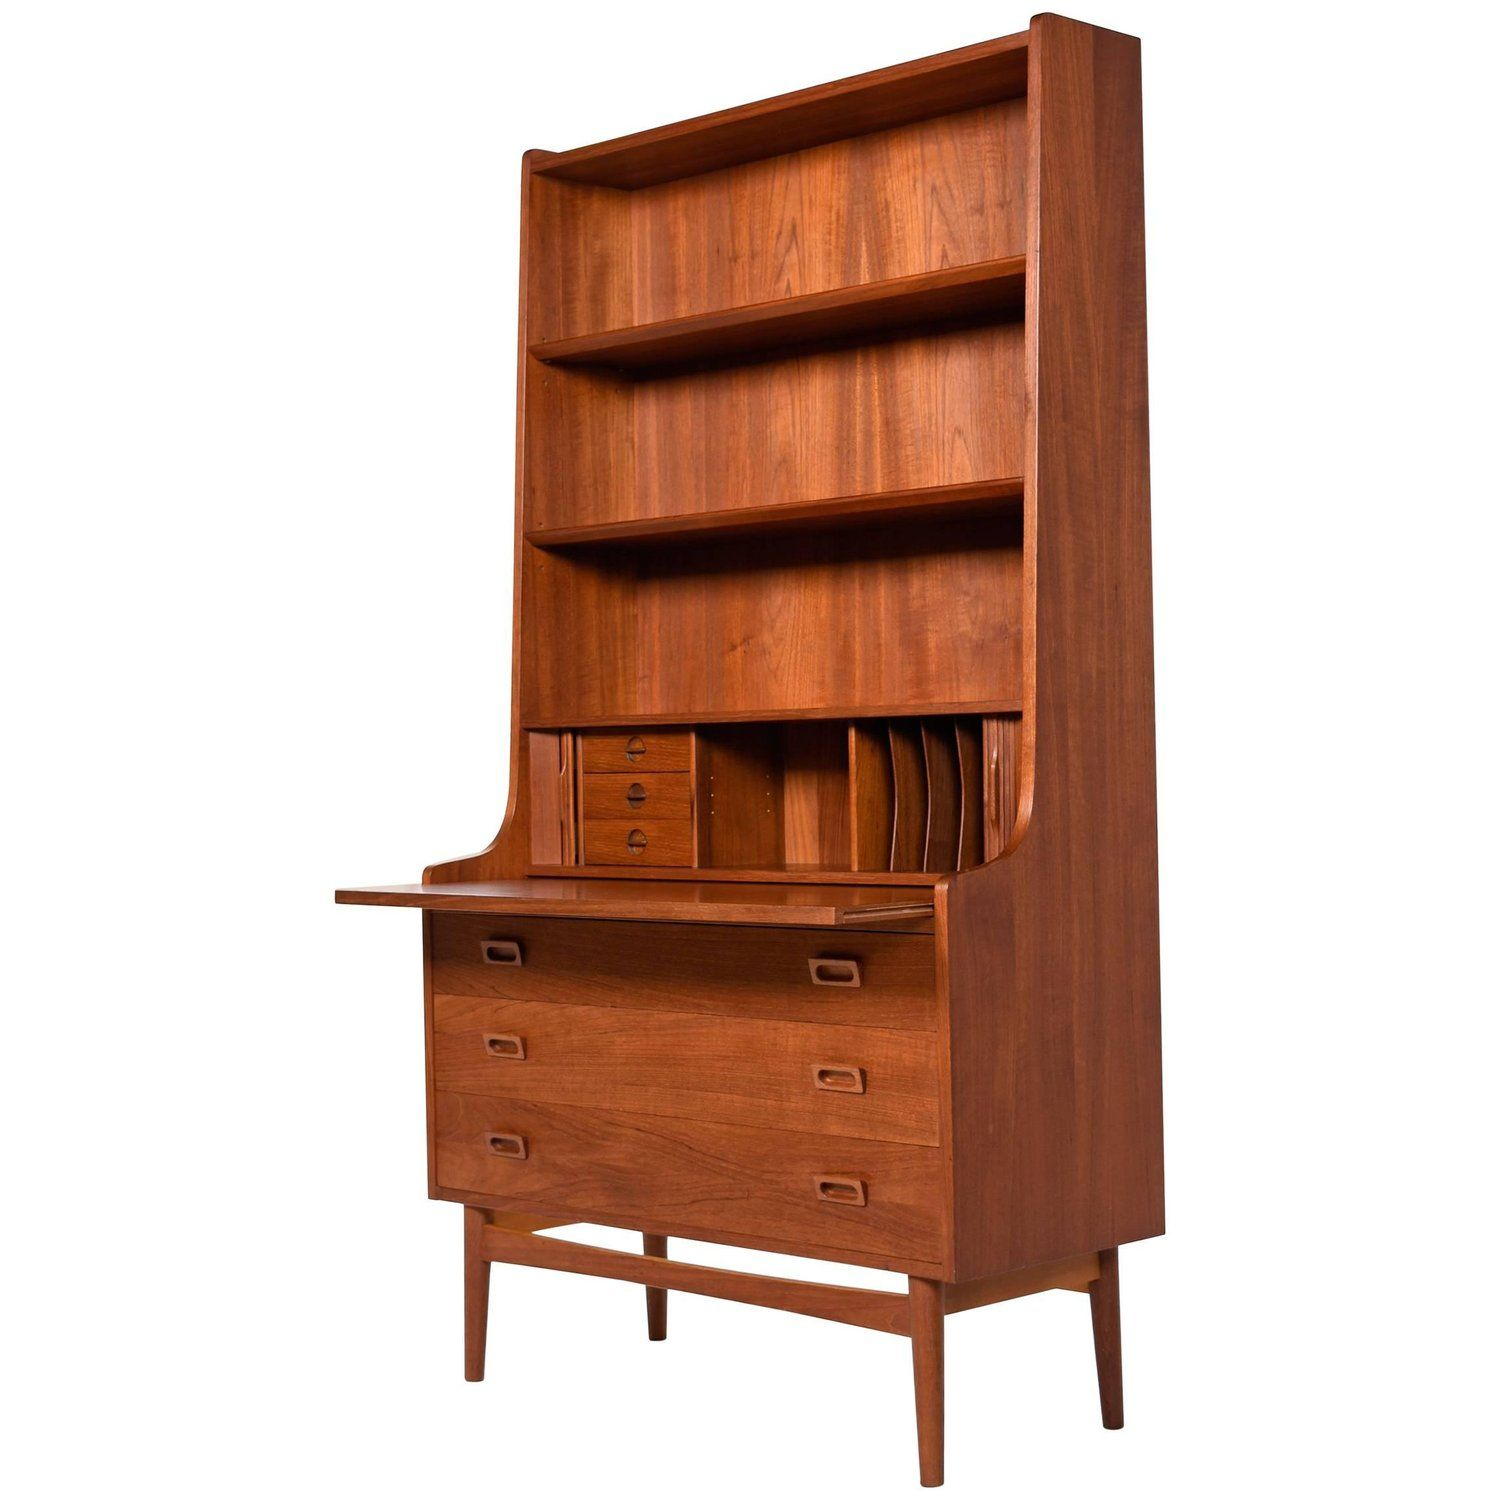 danish teak pamono a rge price by regular borge b sale at mogensen bookcase for